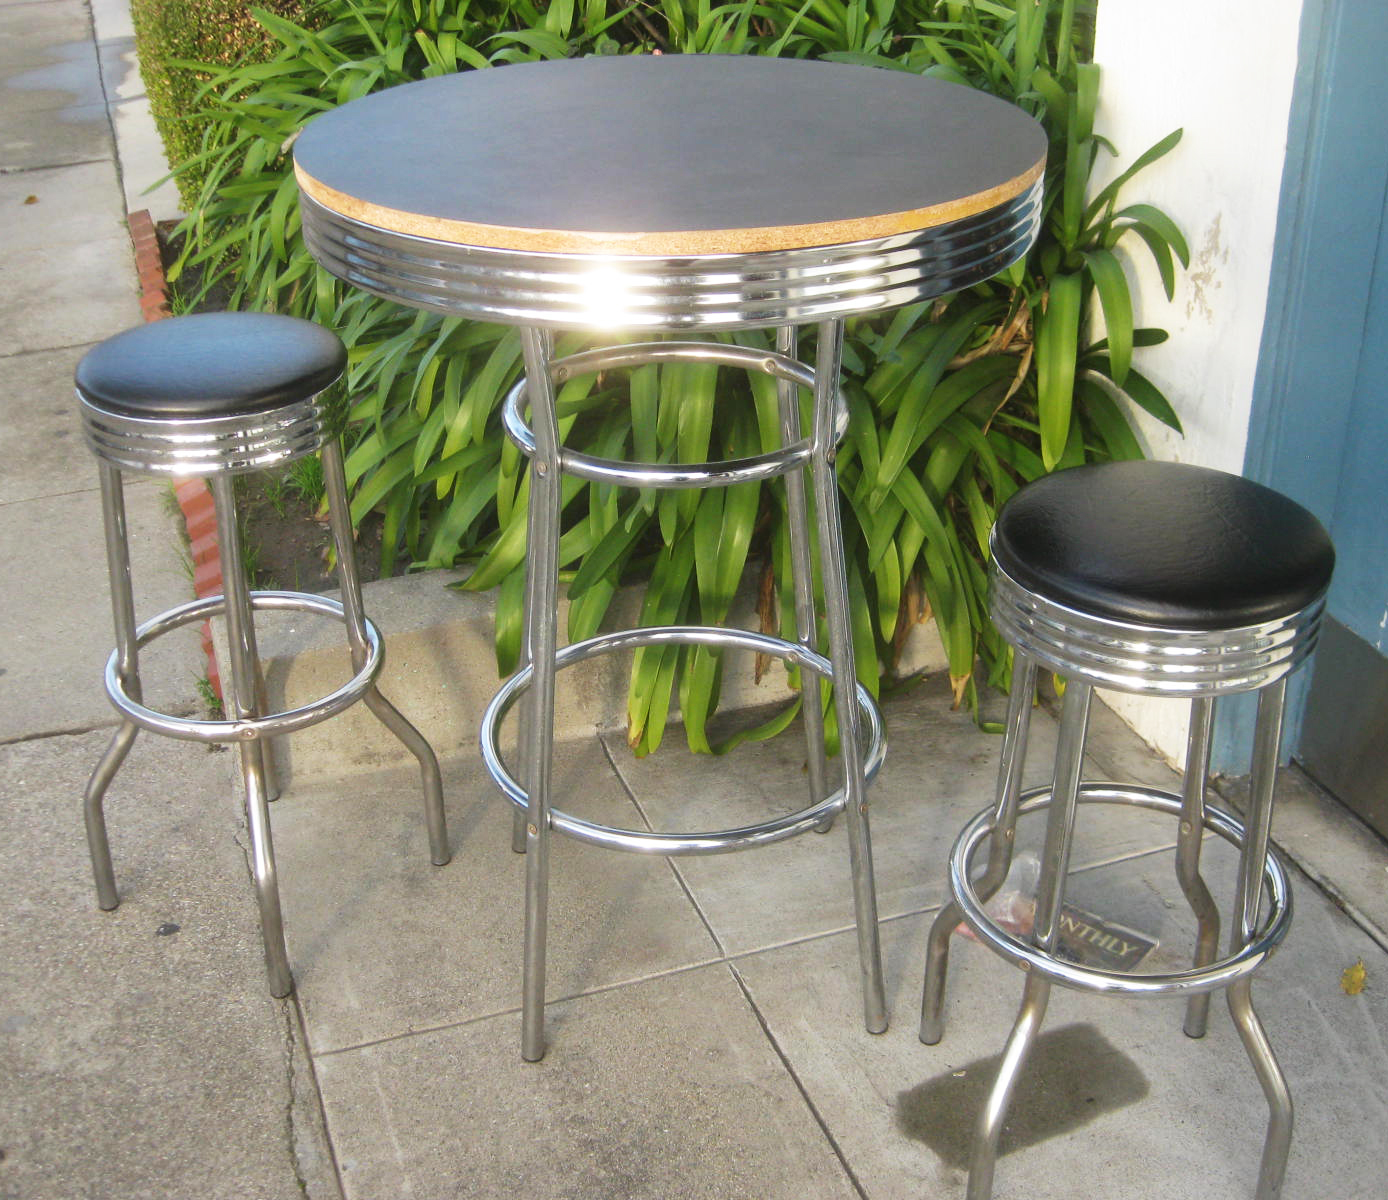 50s Table And Chairs Uhuru Furniture And Collectibles Sold 3950s Diner Stool